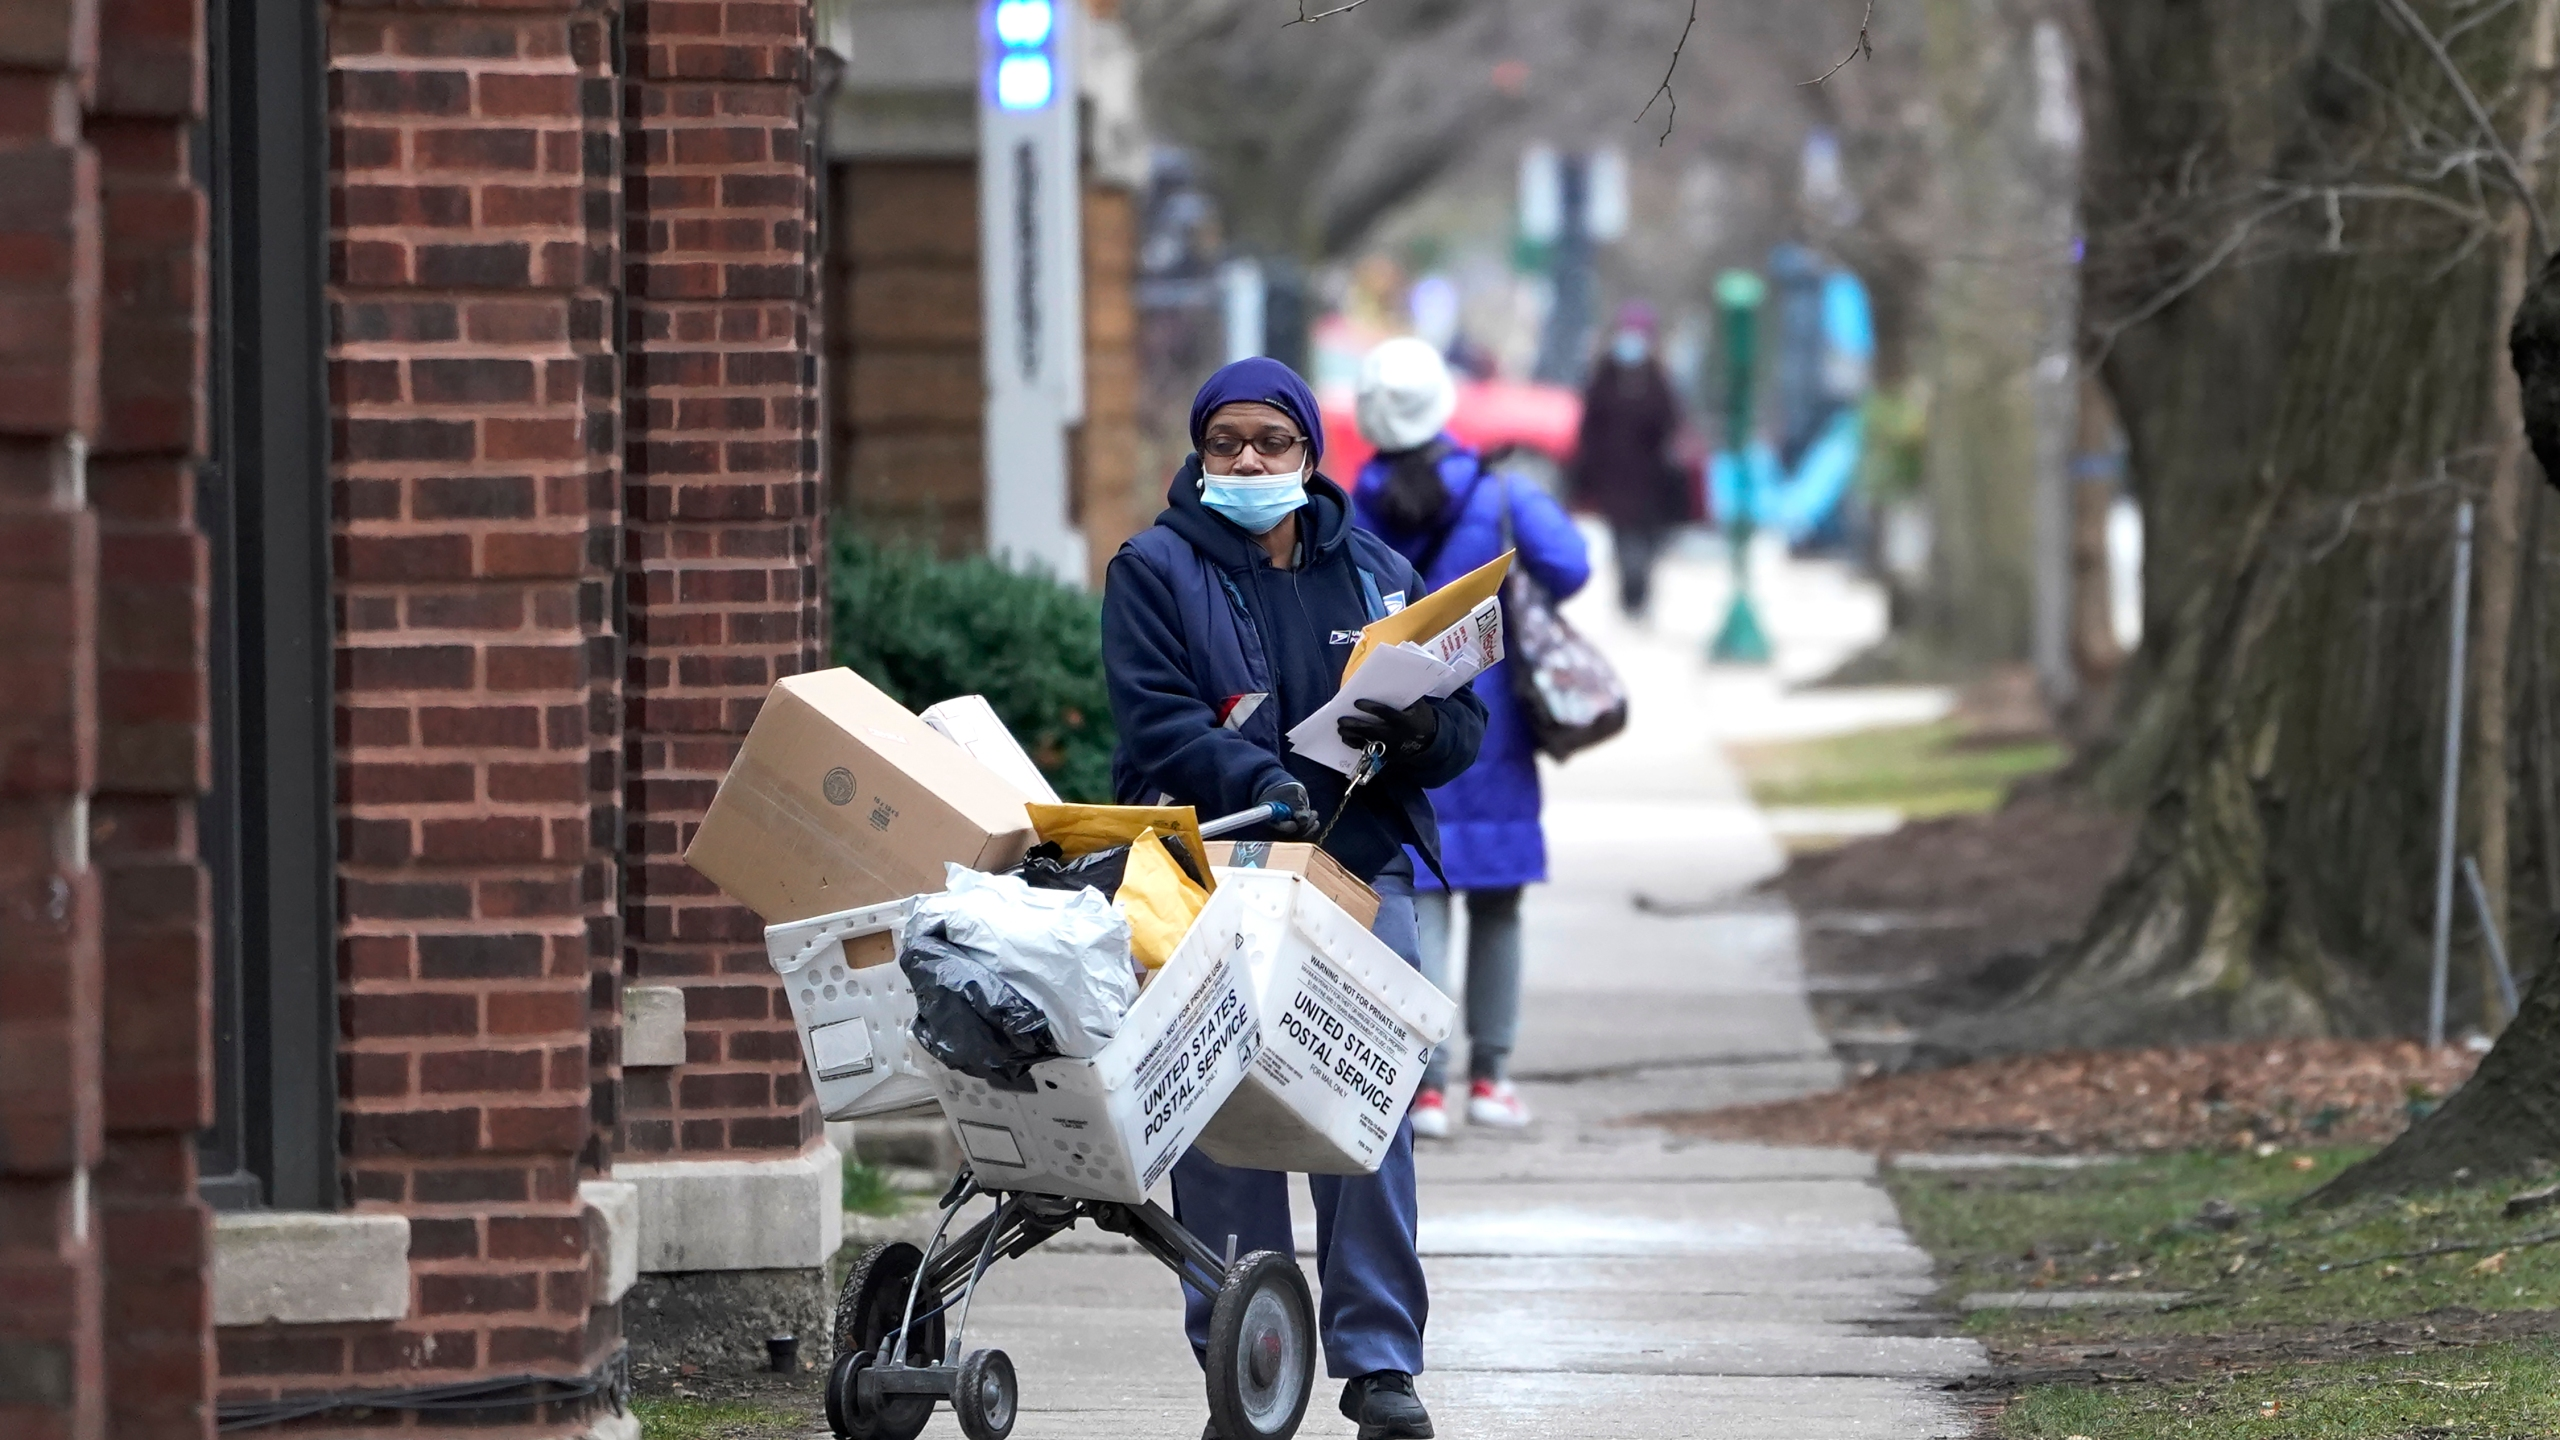 A U.S. postal worker delivers packages, boxes and letters Dec. 22, 2020, along her route in the Hyde Park neighborhood of Chicago on Dec. 22, 2020. (Charles Rex Arbogast)